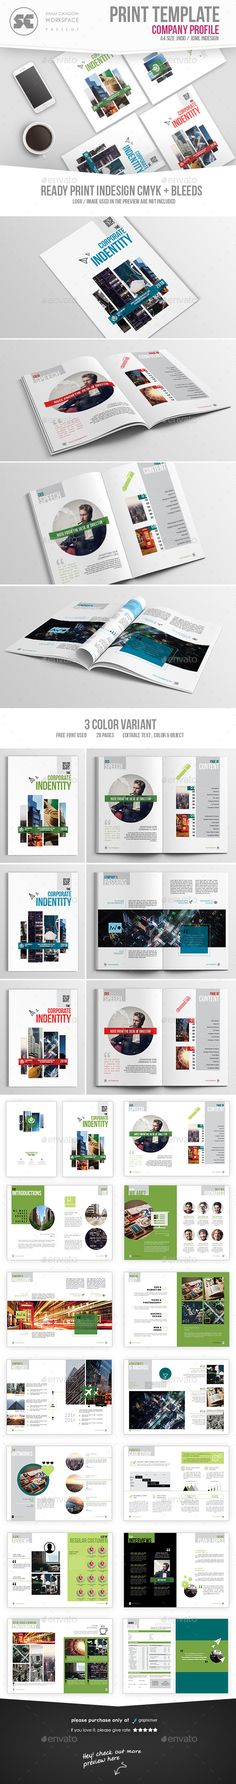 Company Profile - Corporate Brochures Download here : https://graphicriver.net/item/company-profile/19455373?s_rank=66&ref=Al-fatih